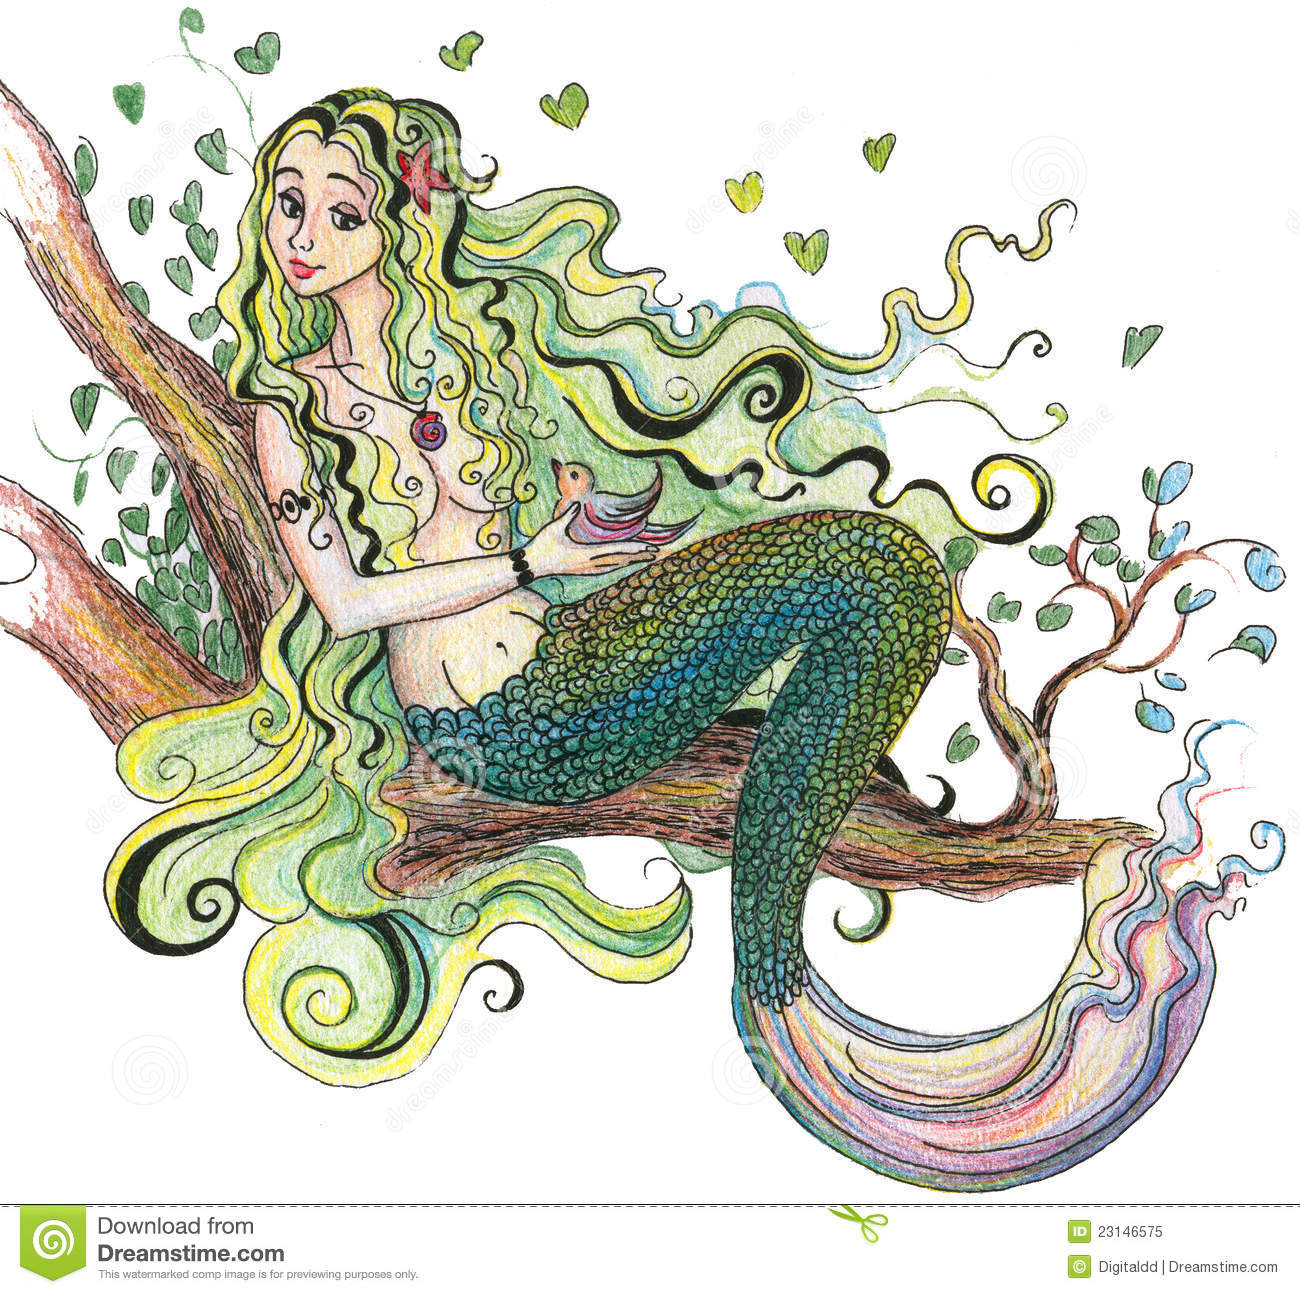 Mermaids Drawings In Color - WeSharePics